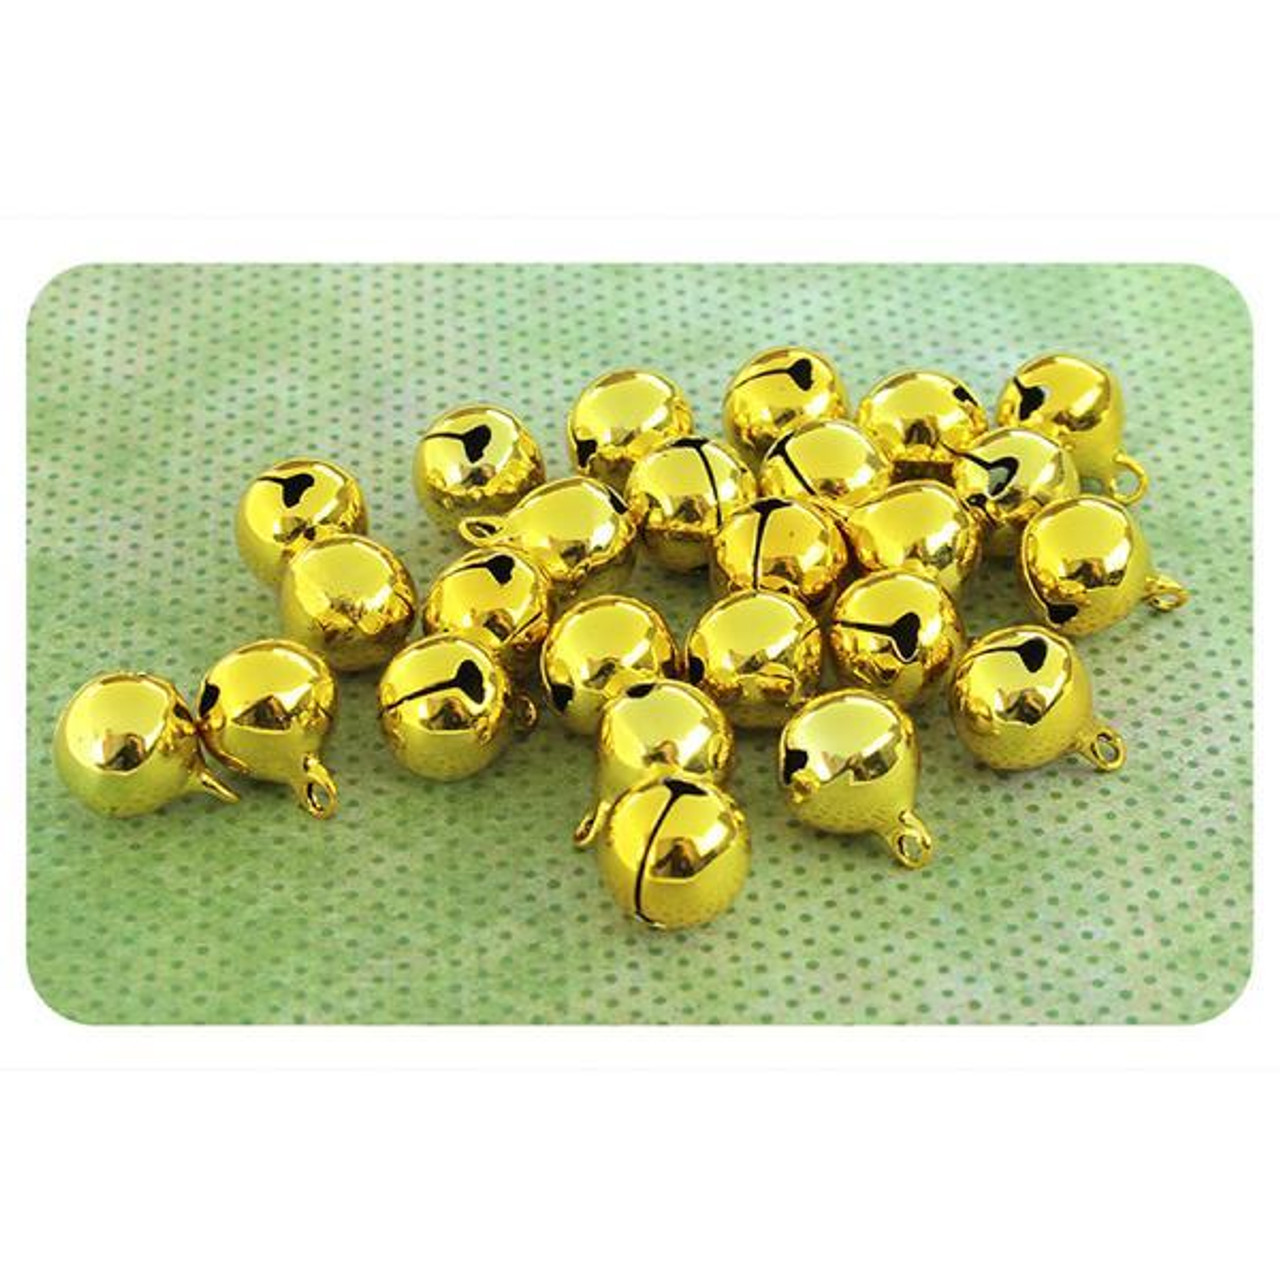 12mm Foley Bell - 25pieces